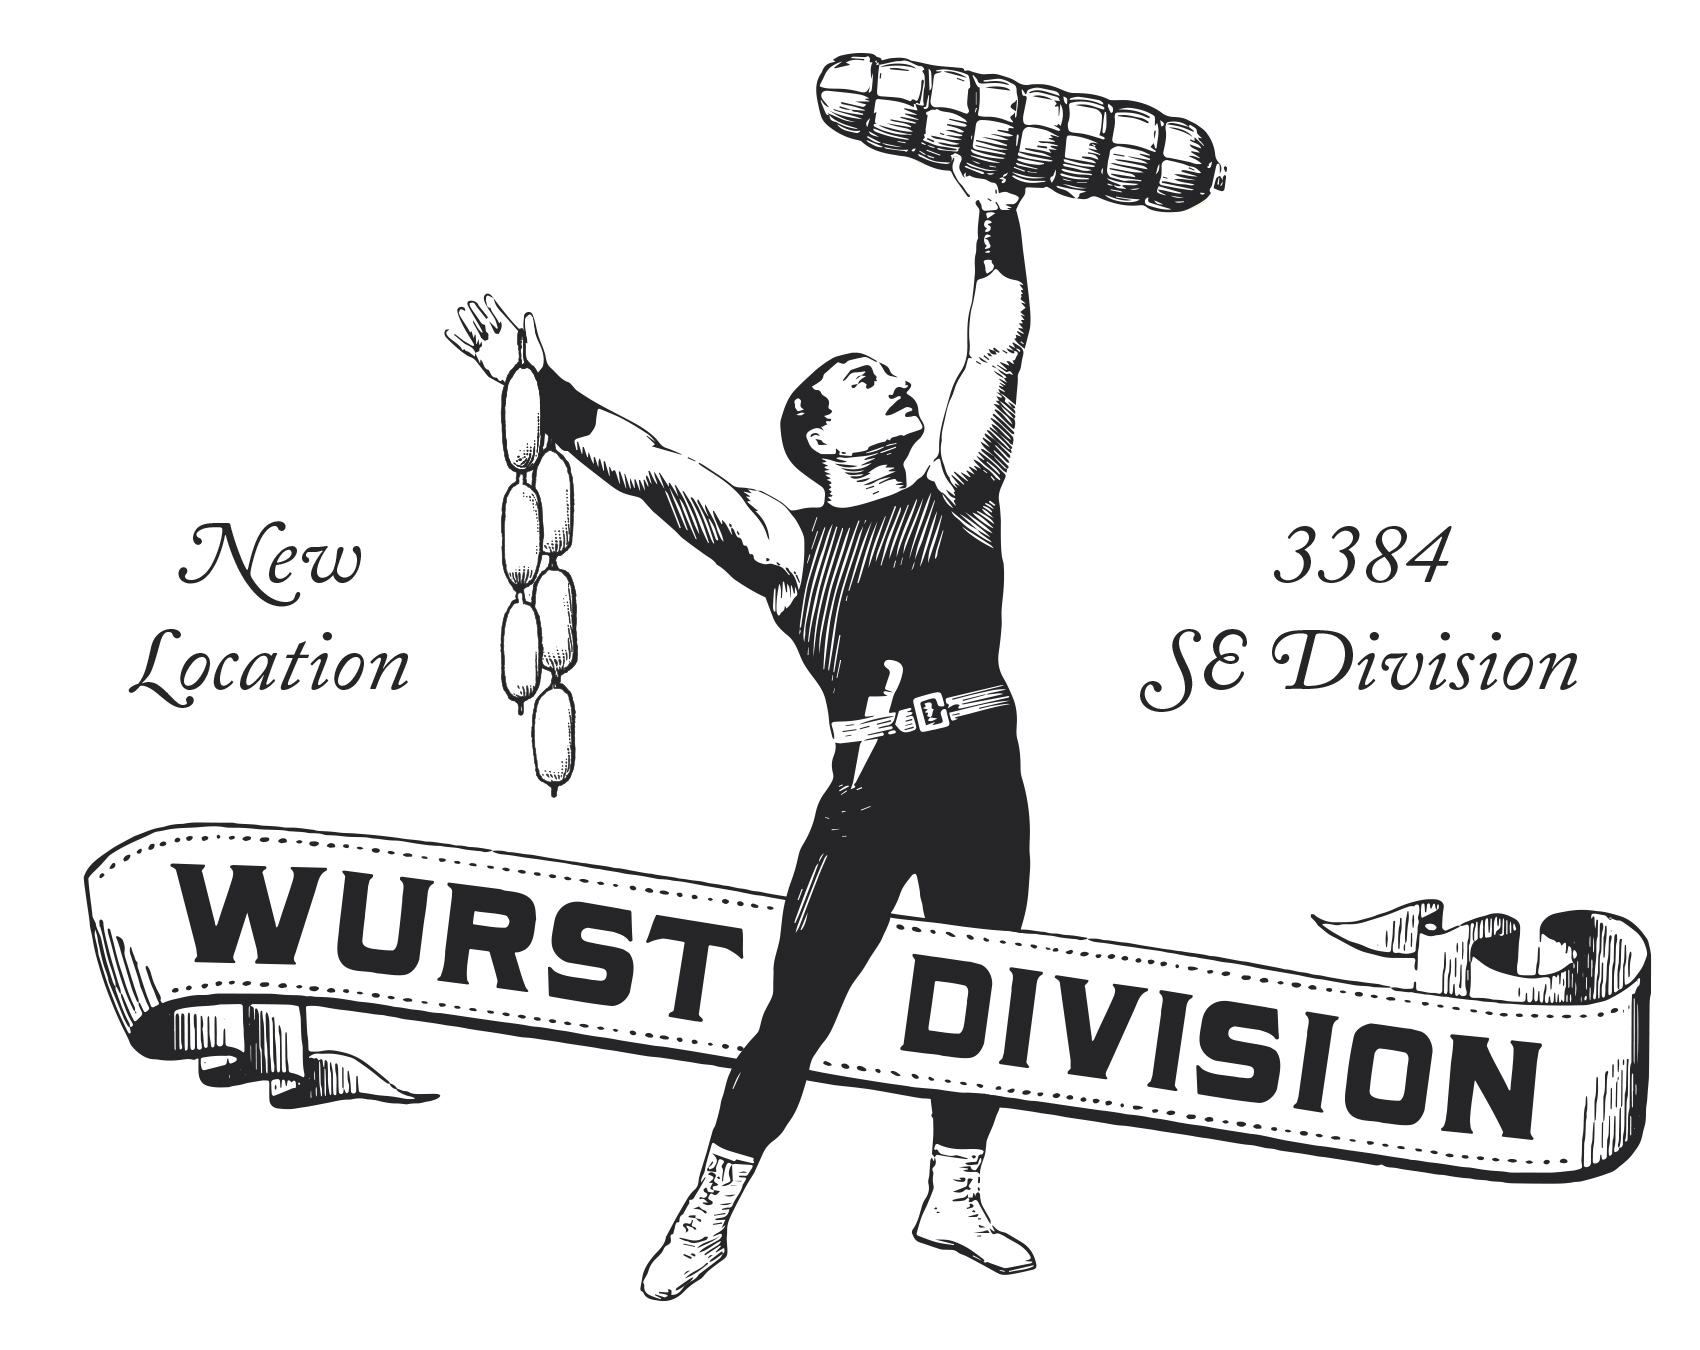 Strongman sausage lifter announcing the new OP Wurst Division location in SE Portland